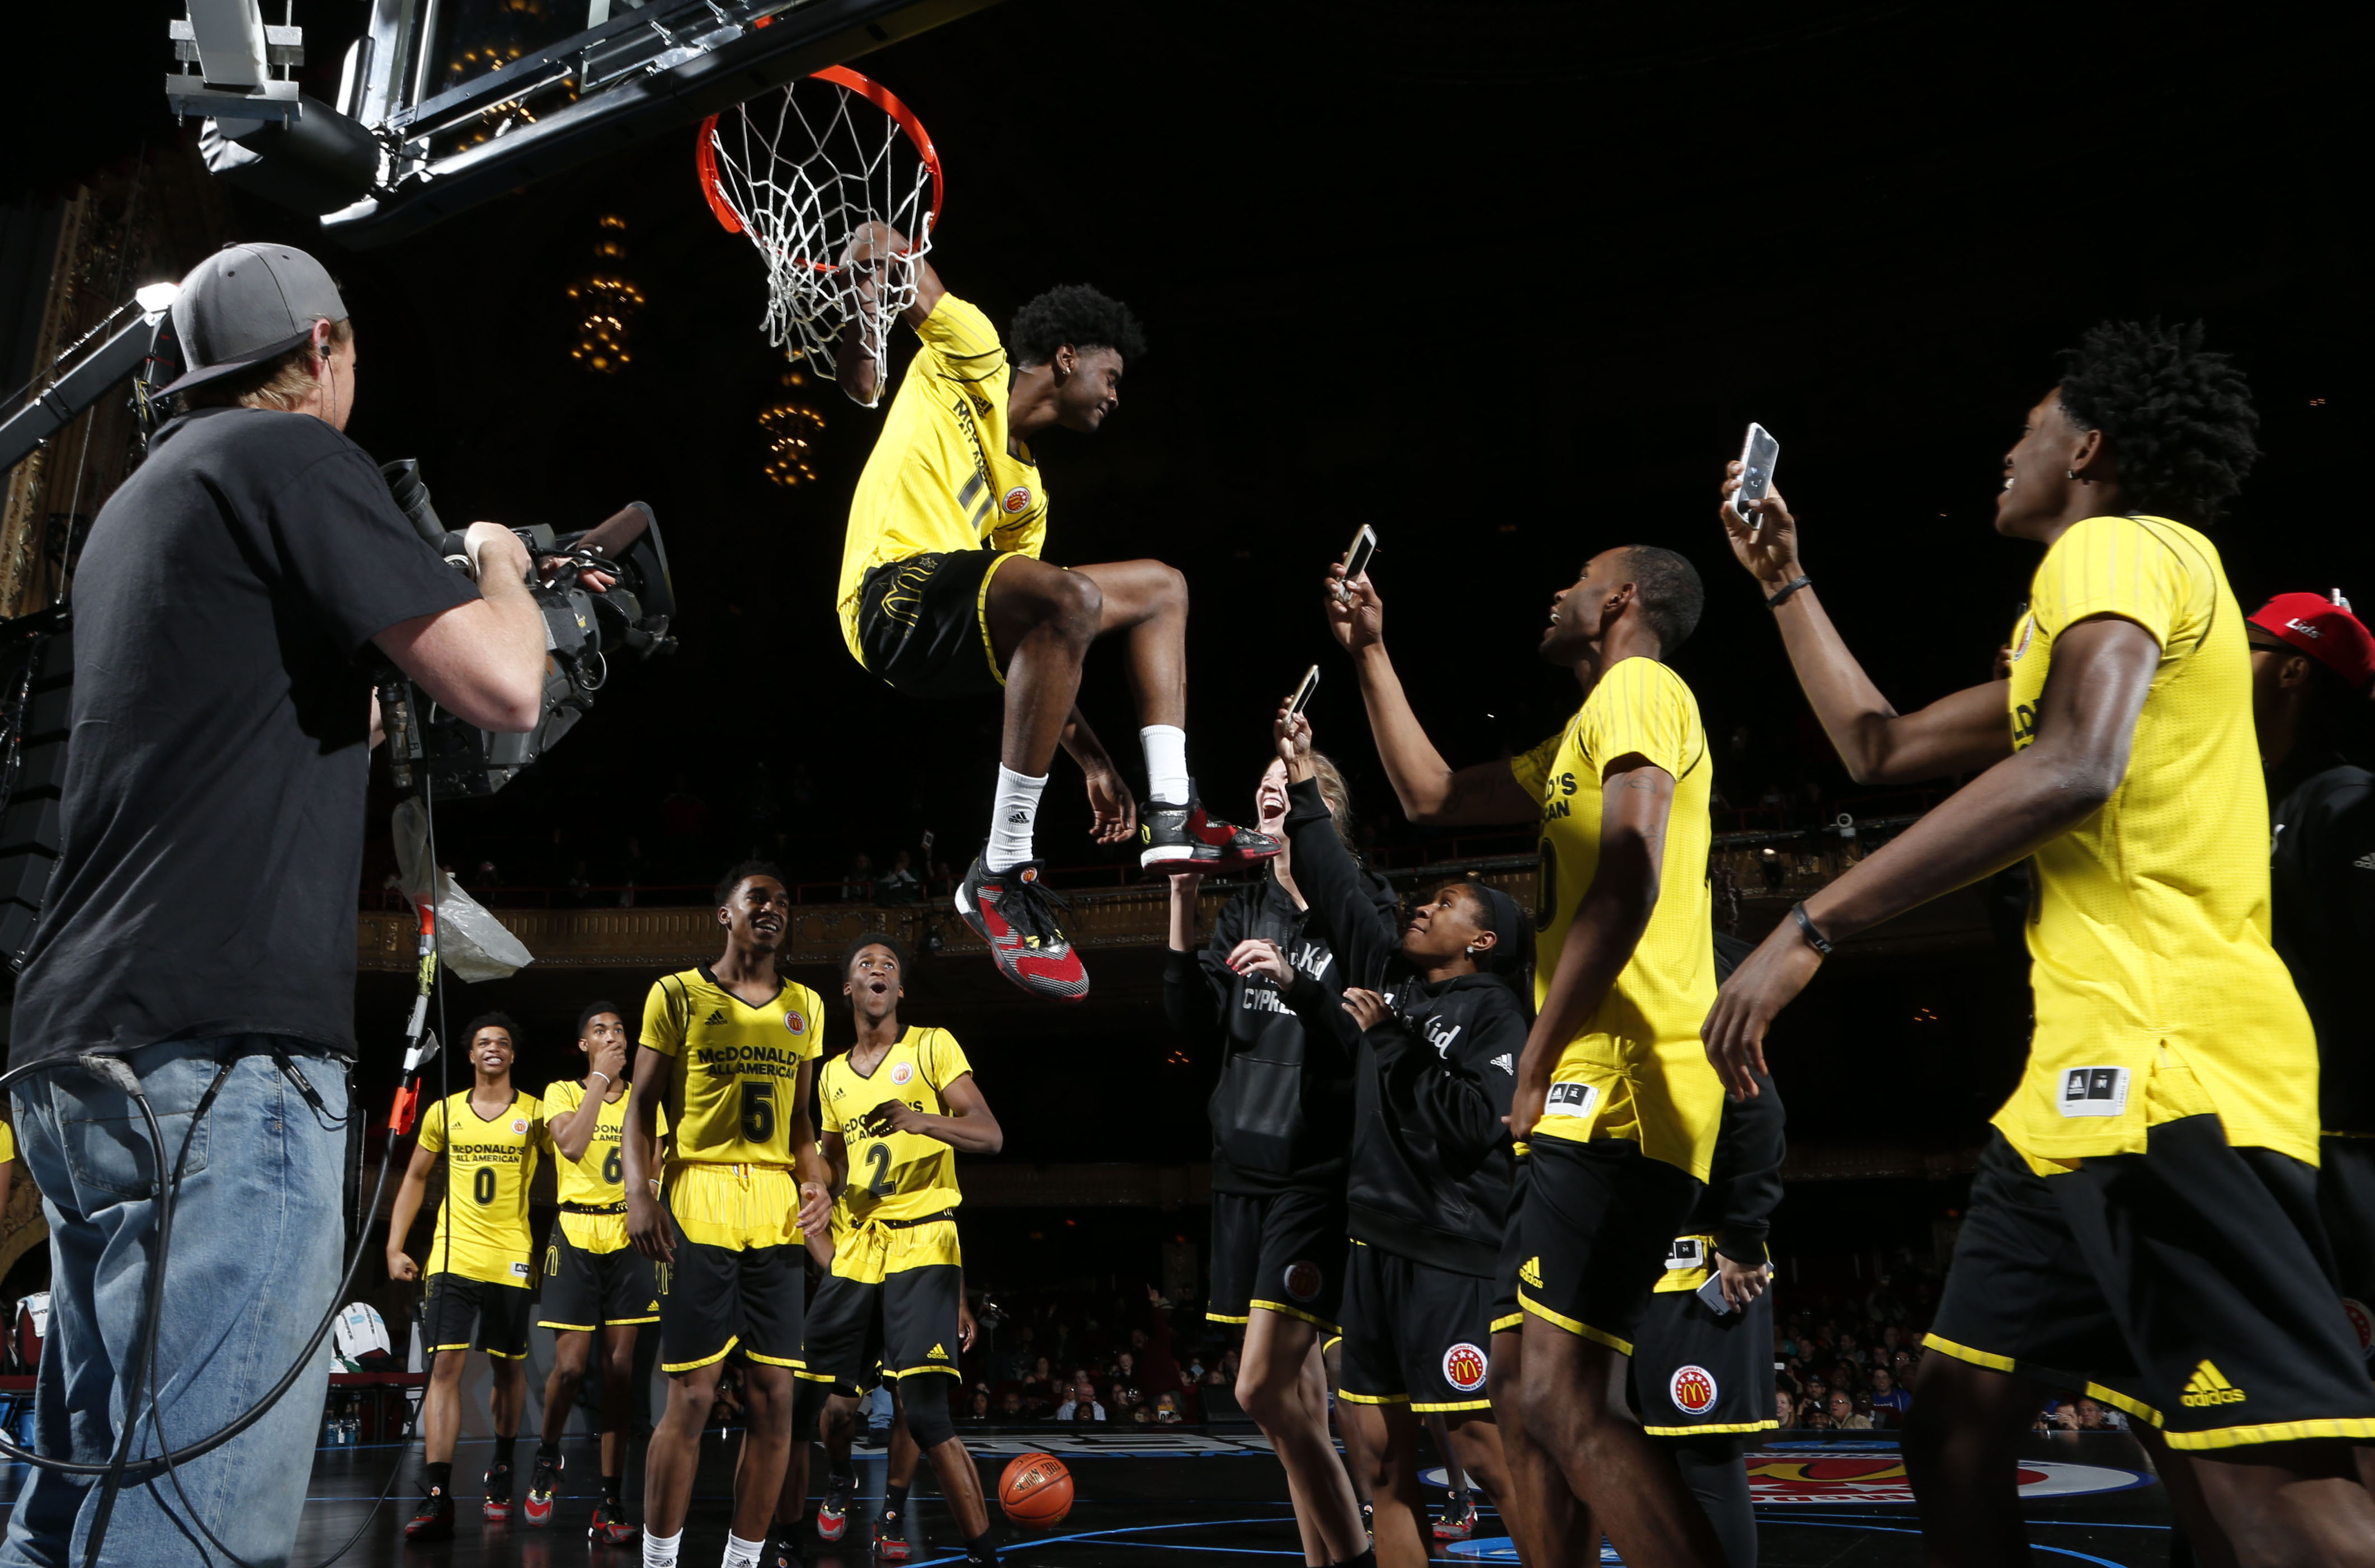 Josh Johnson hangs on the rim after dunking over Nancy Mulkey (Photo: Brian Spurlock, USA TODAY Sports)